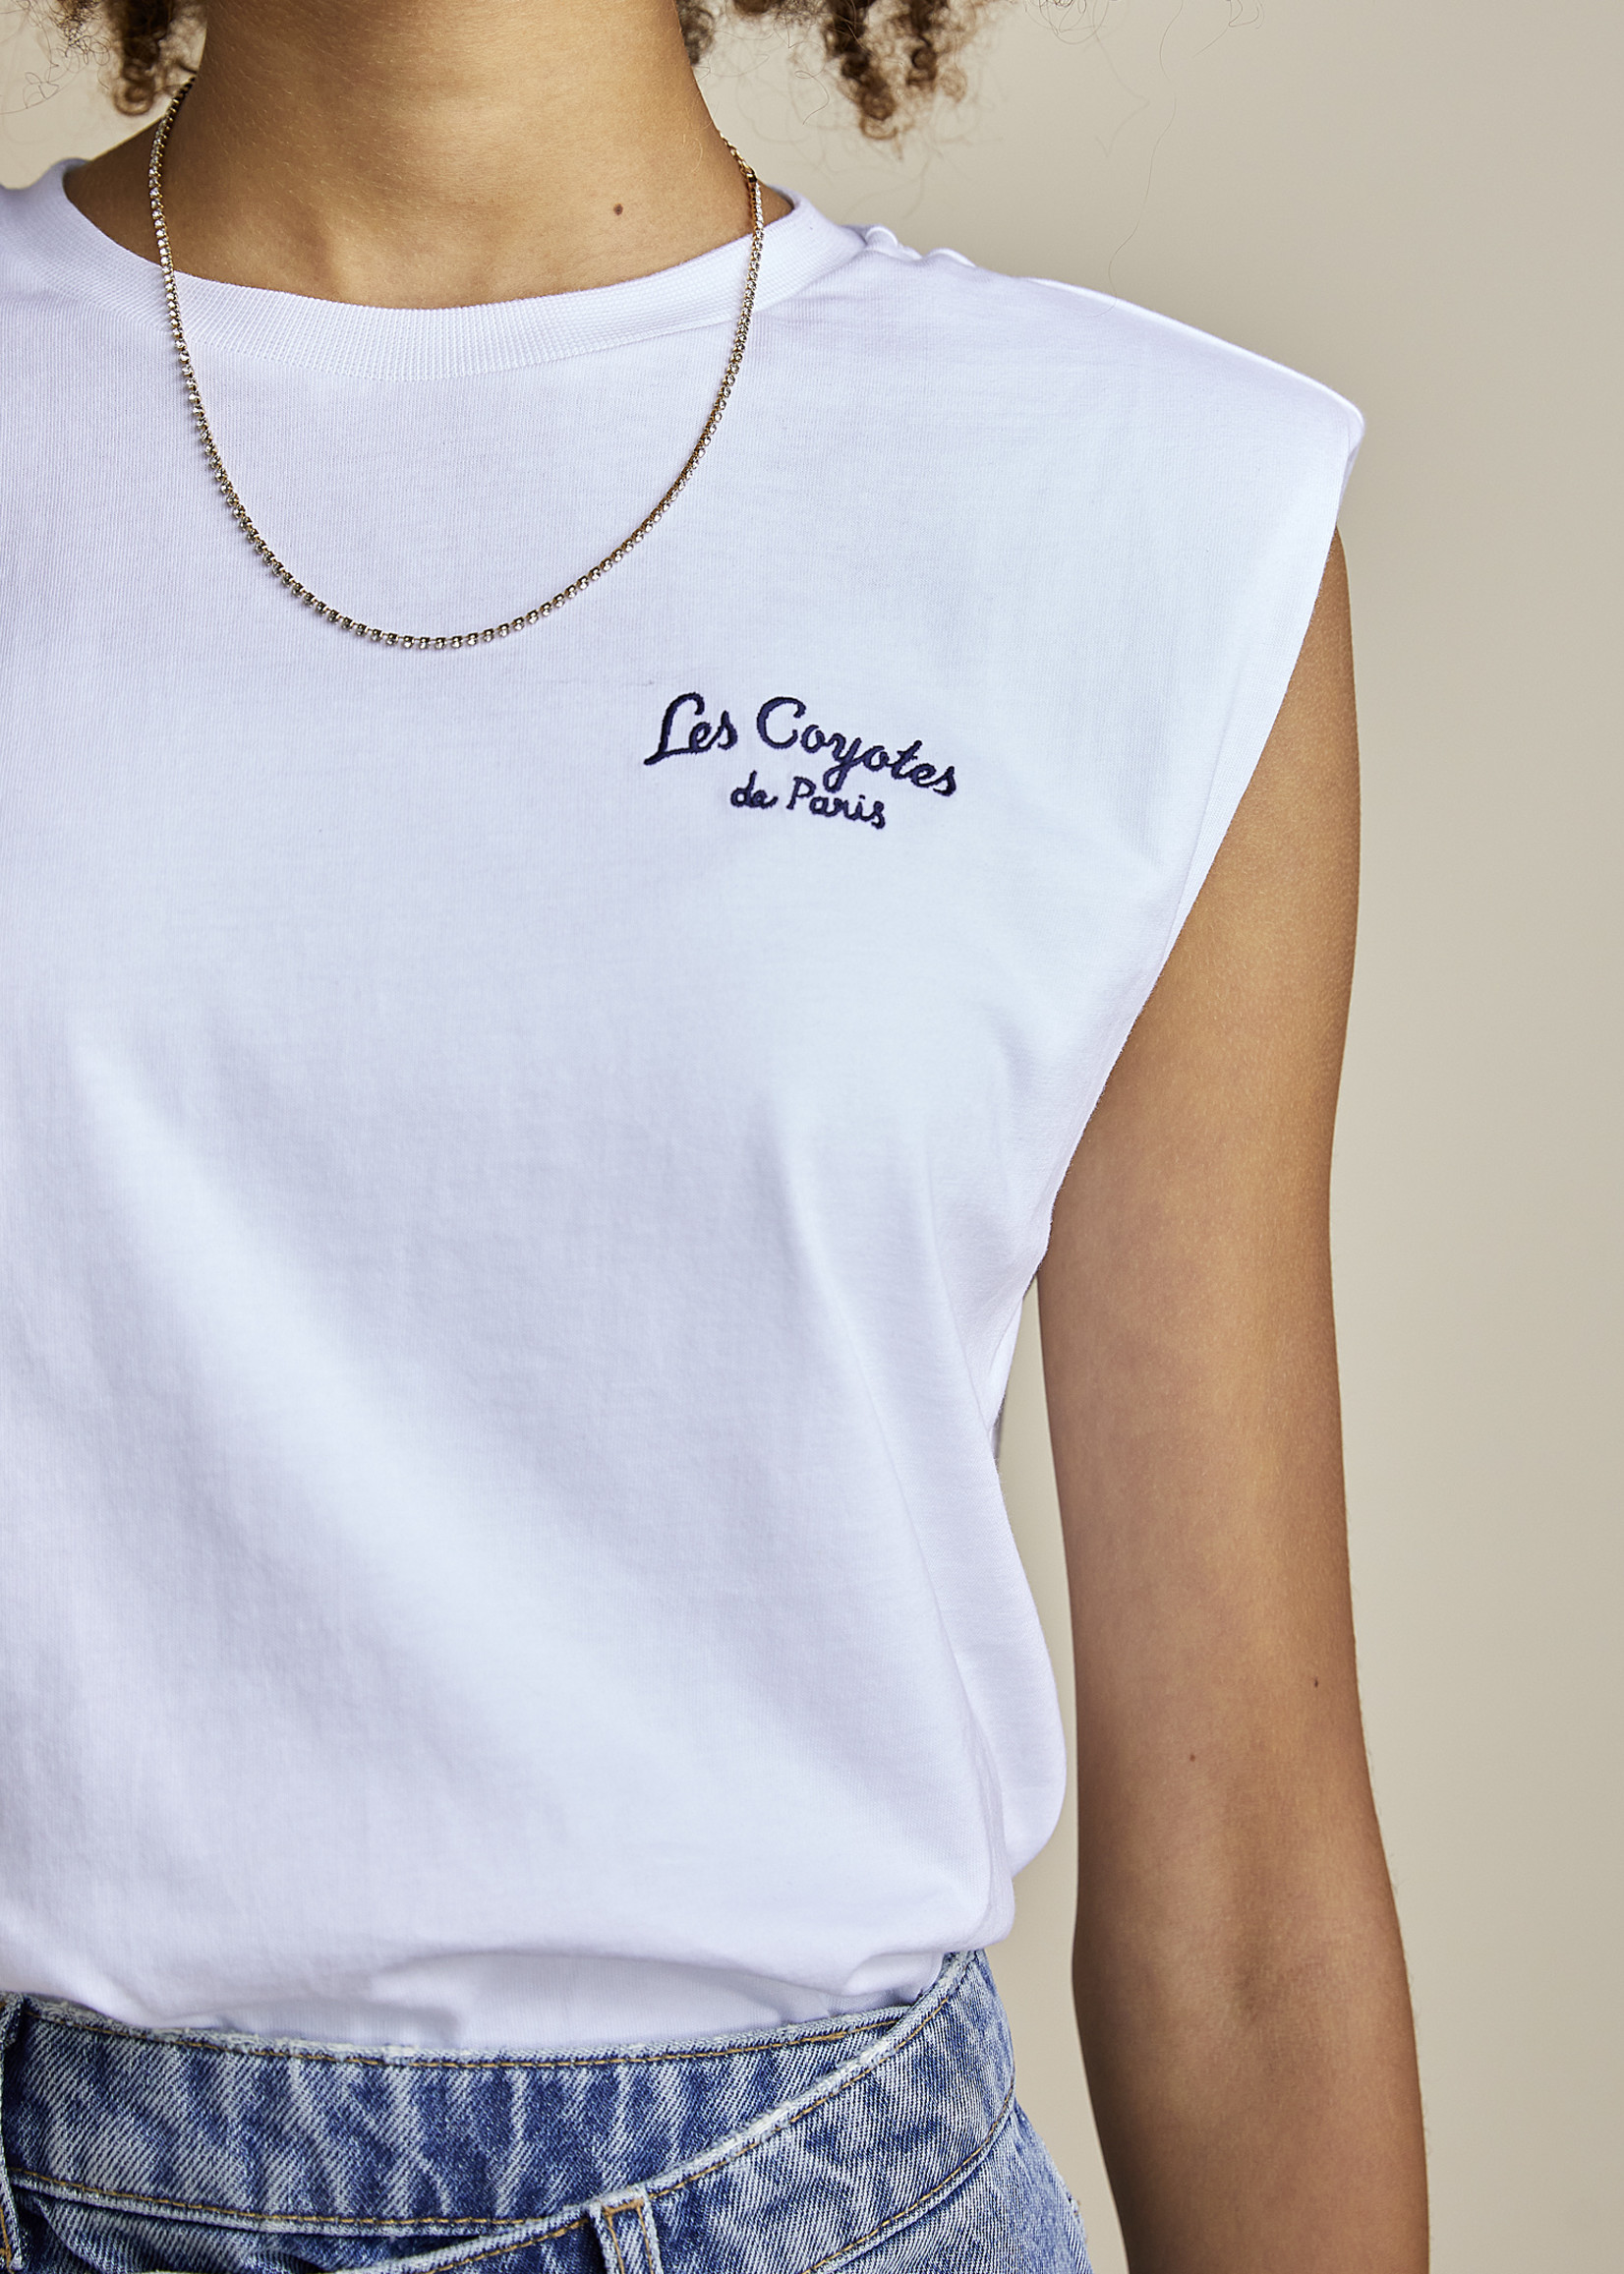 LES COYOTES DE PARIS T-SHIRT DEVON